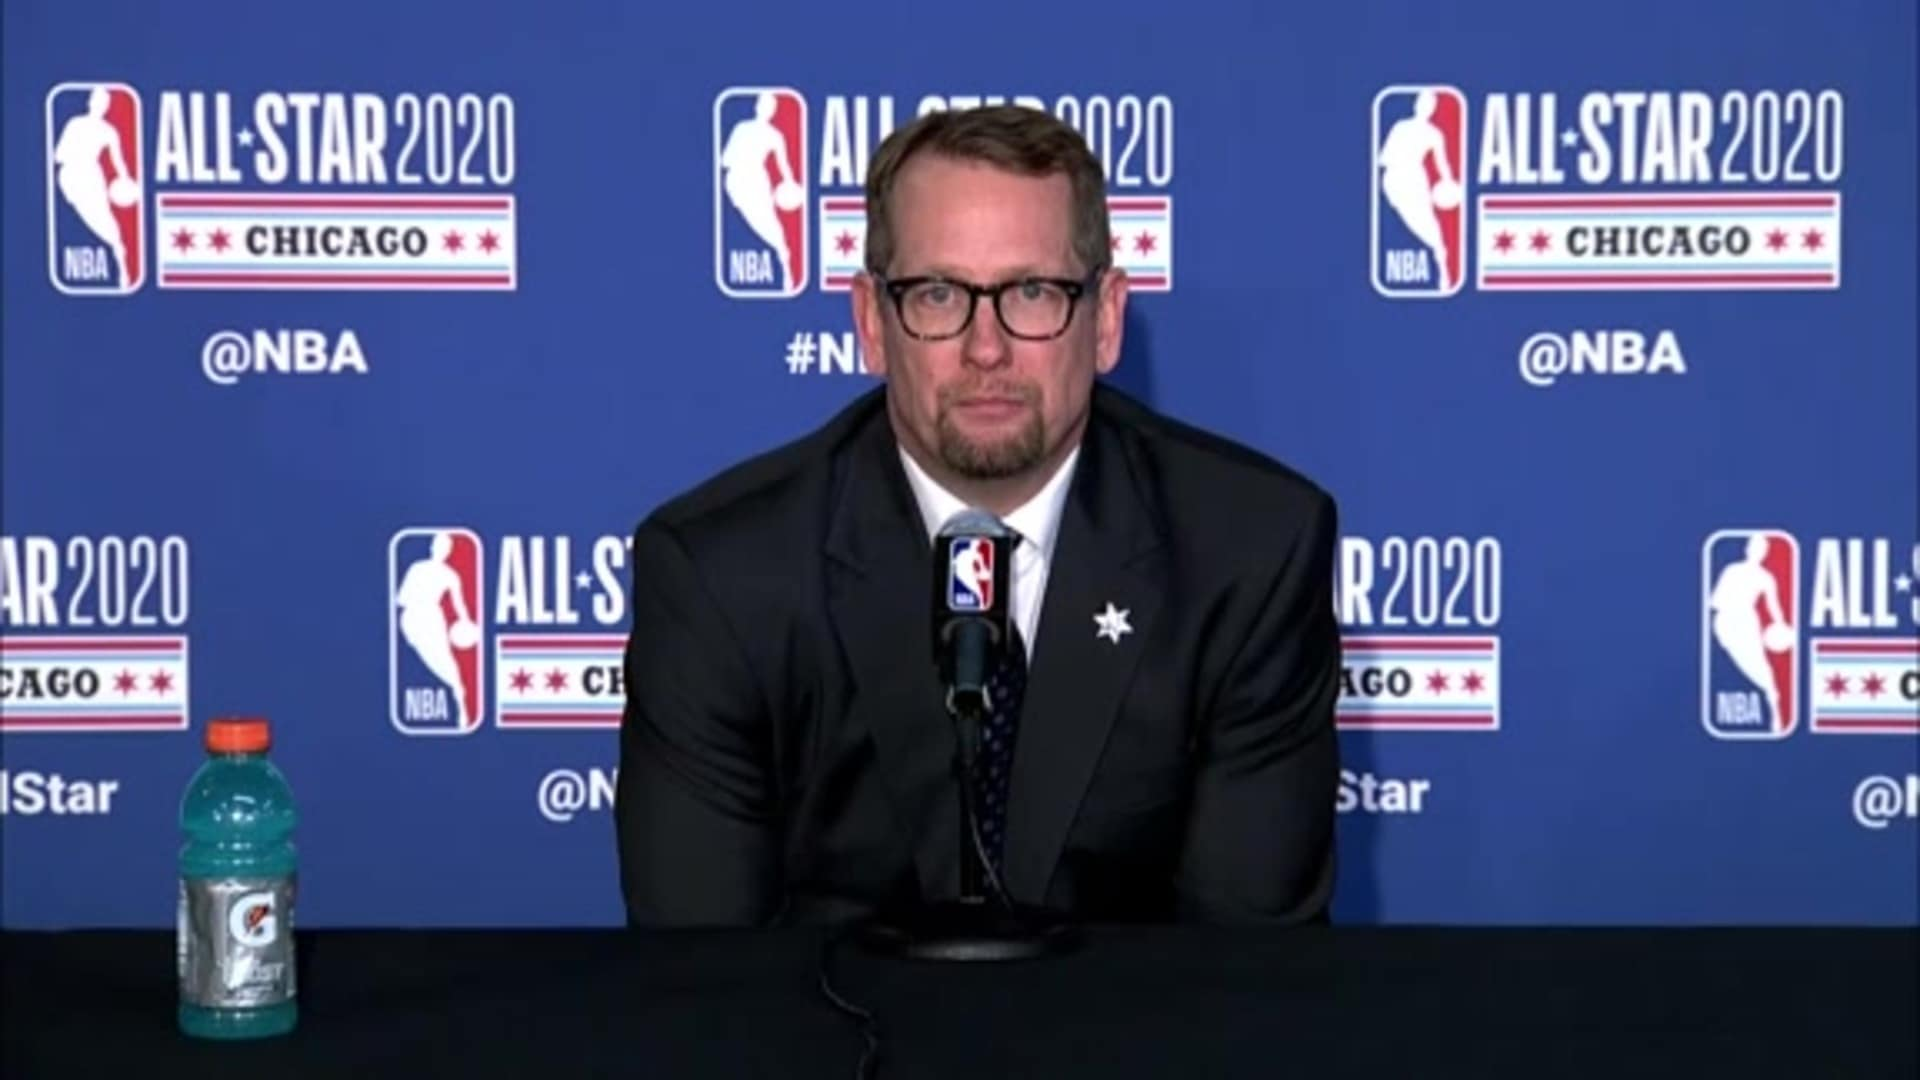 All Star: Nick Nurse - February 18, 2020